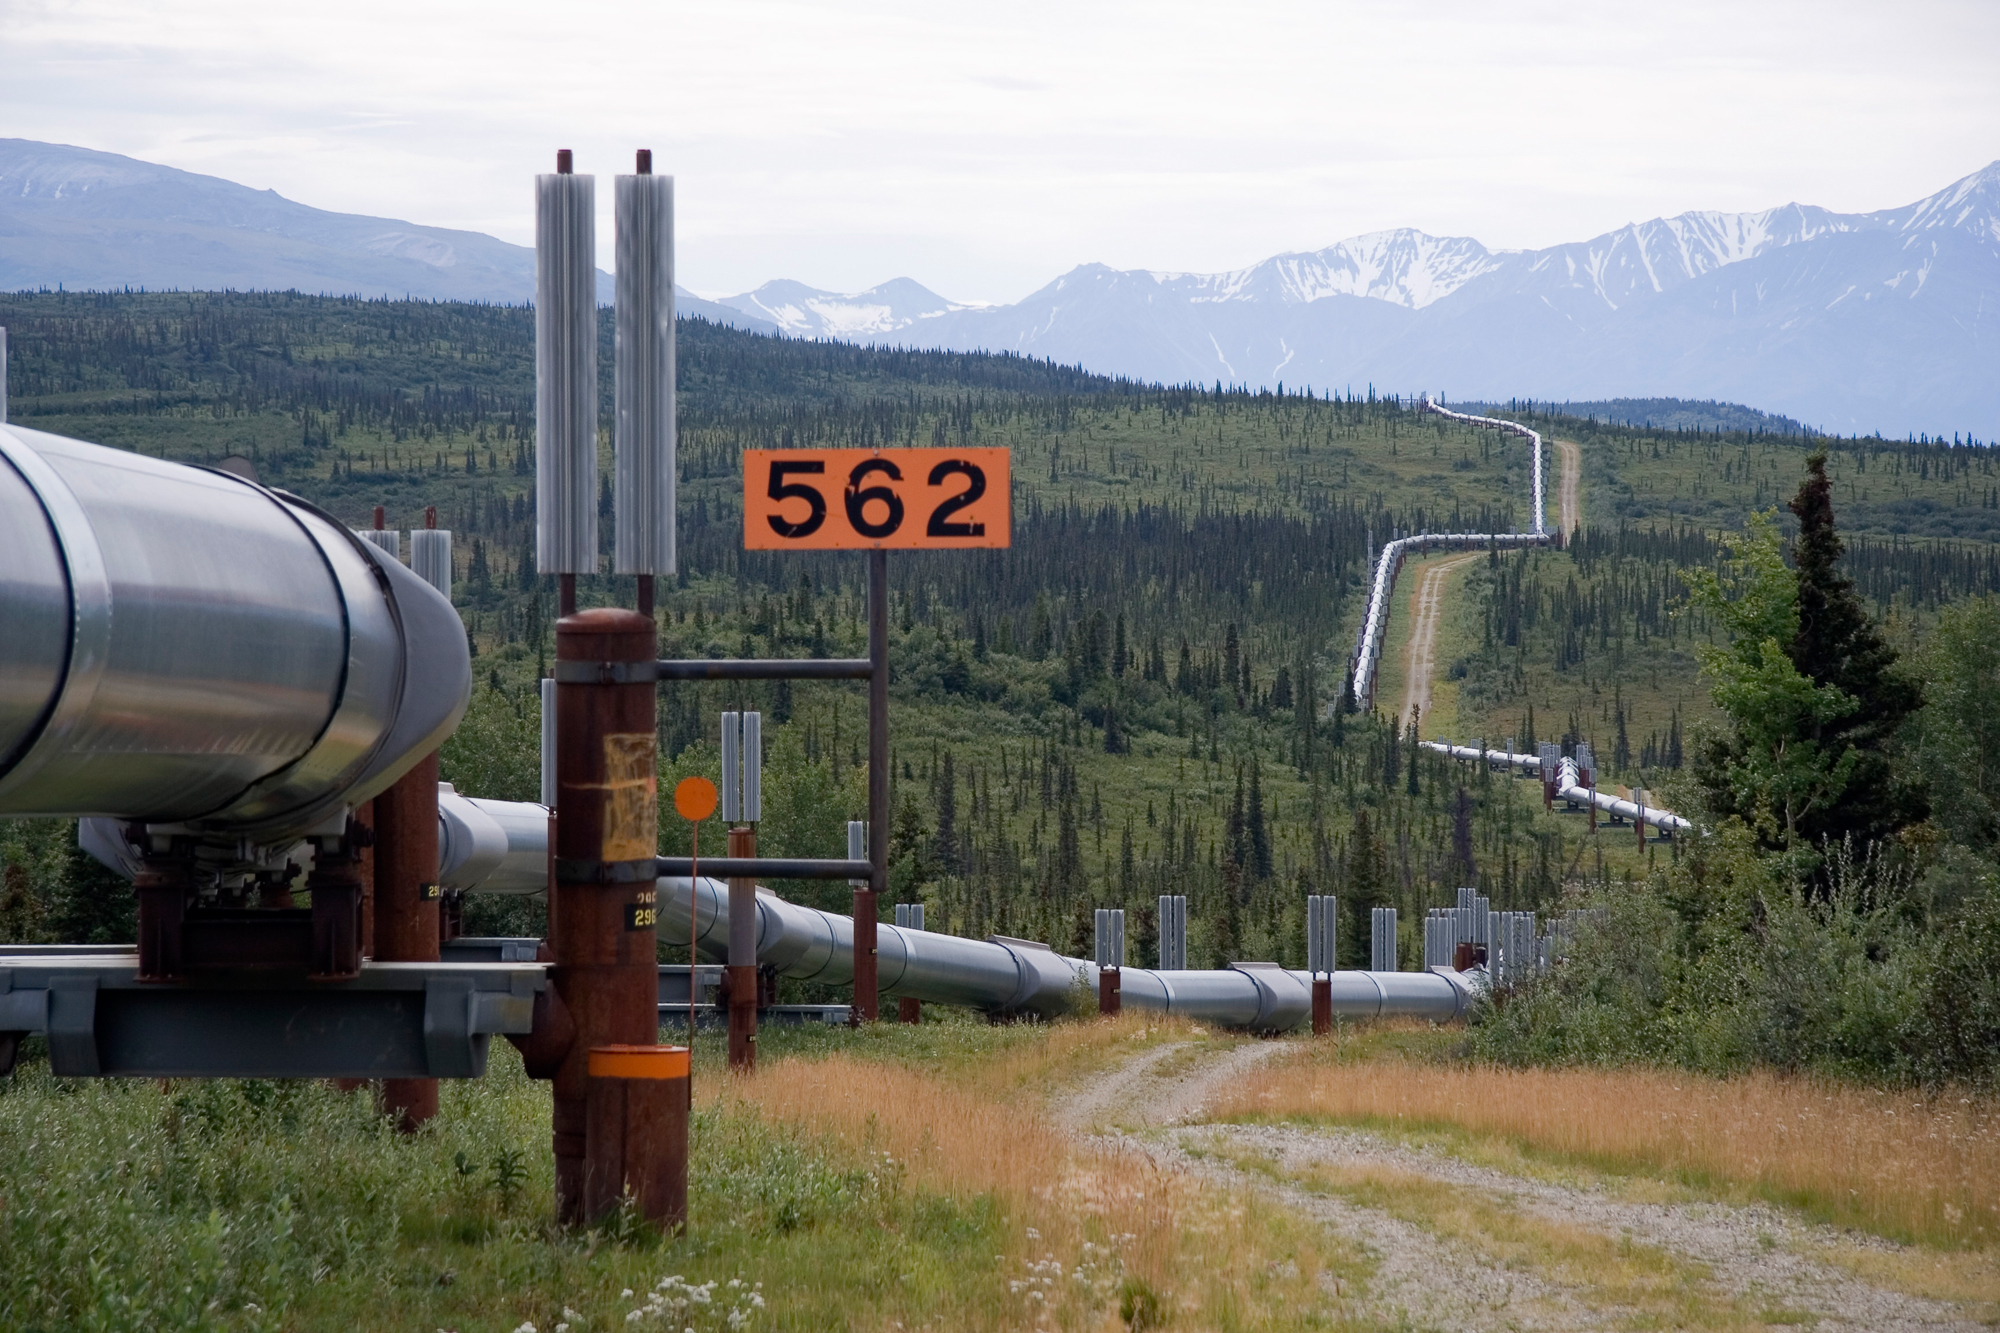 Mexico Burdened Under Tourism Want to Make a New Natural Gas Pipeline